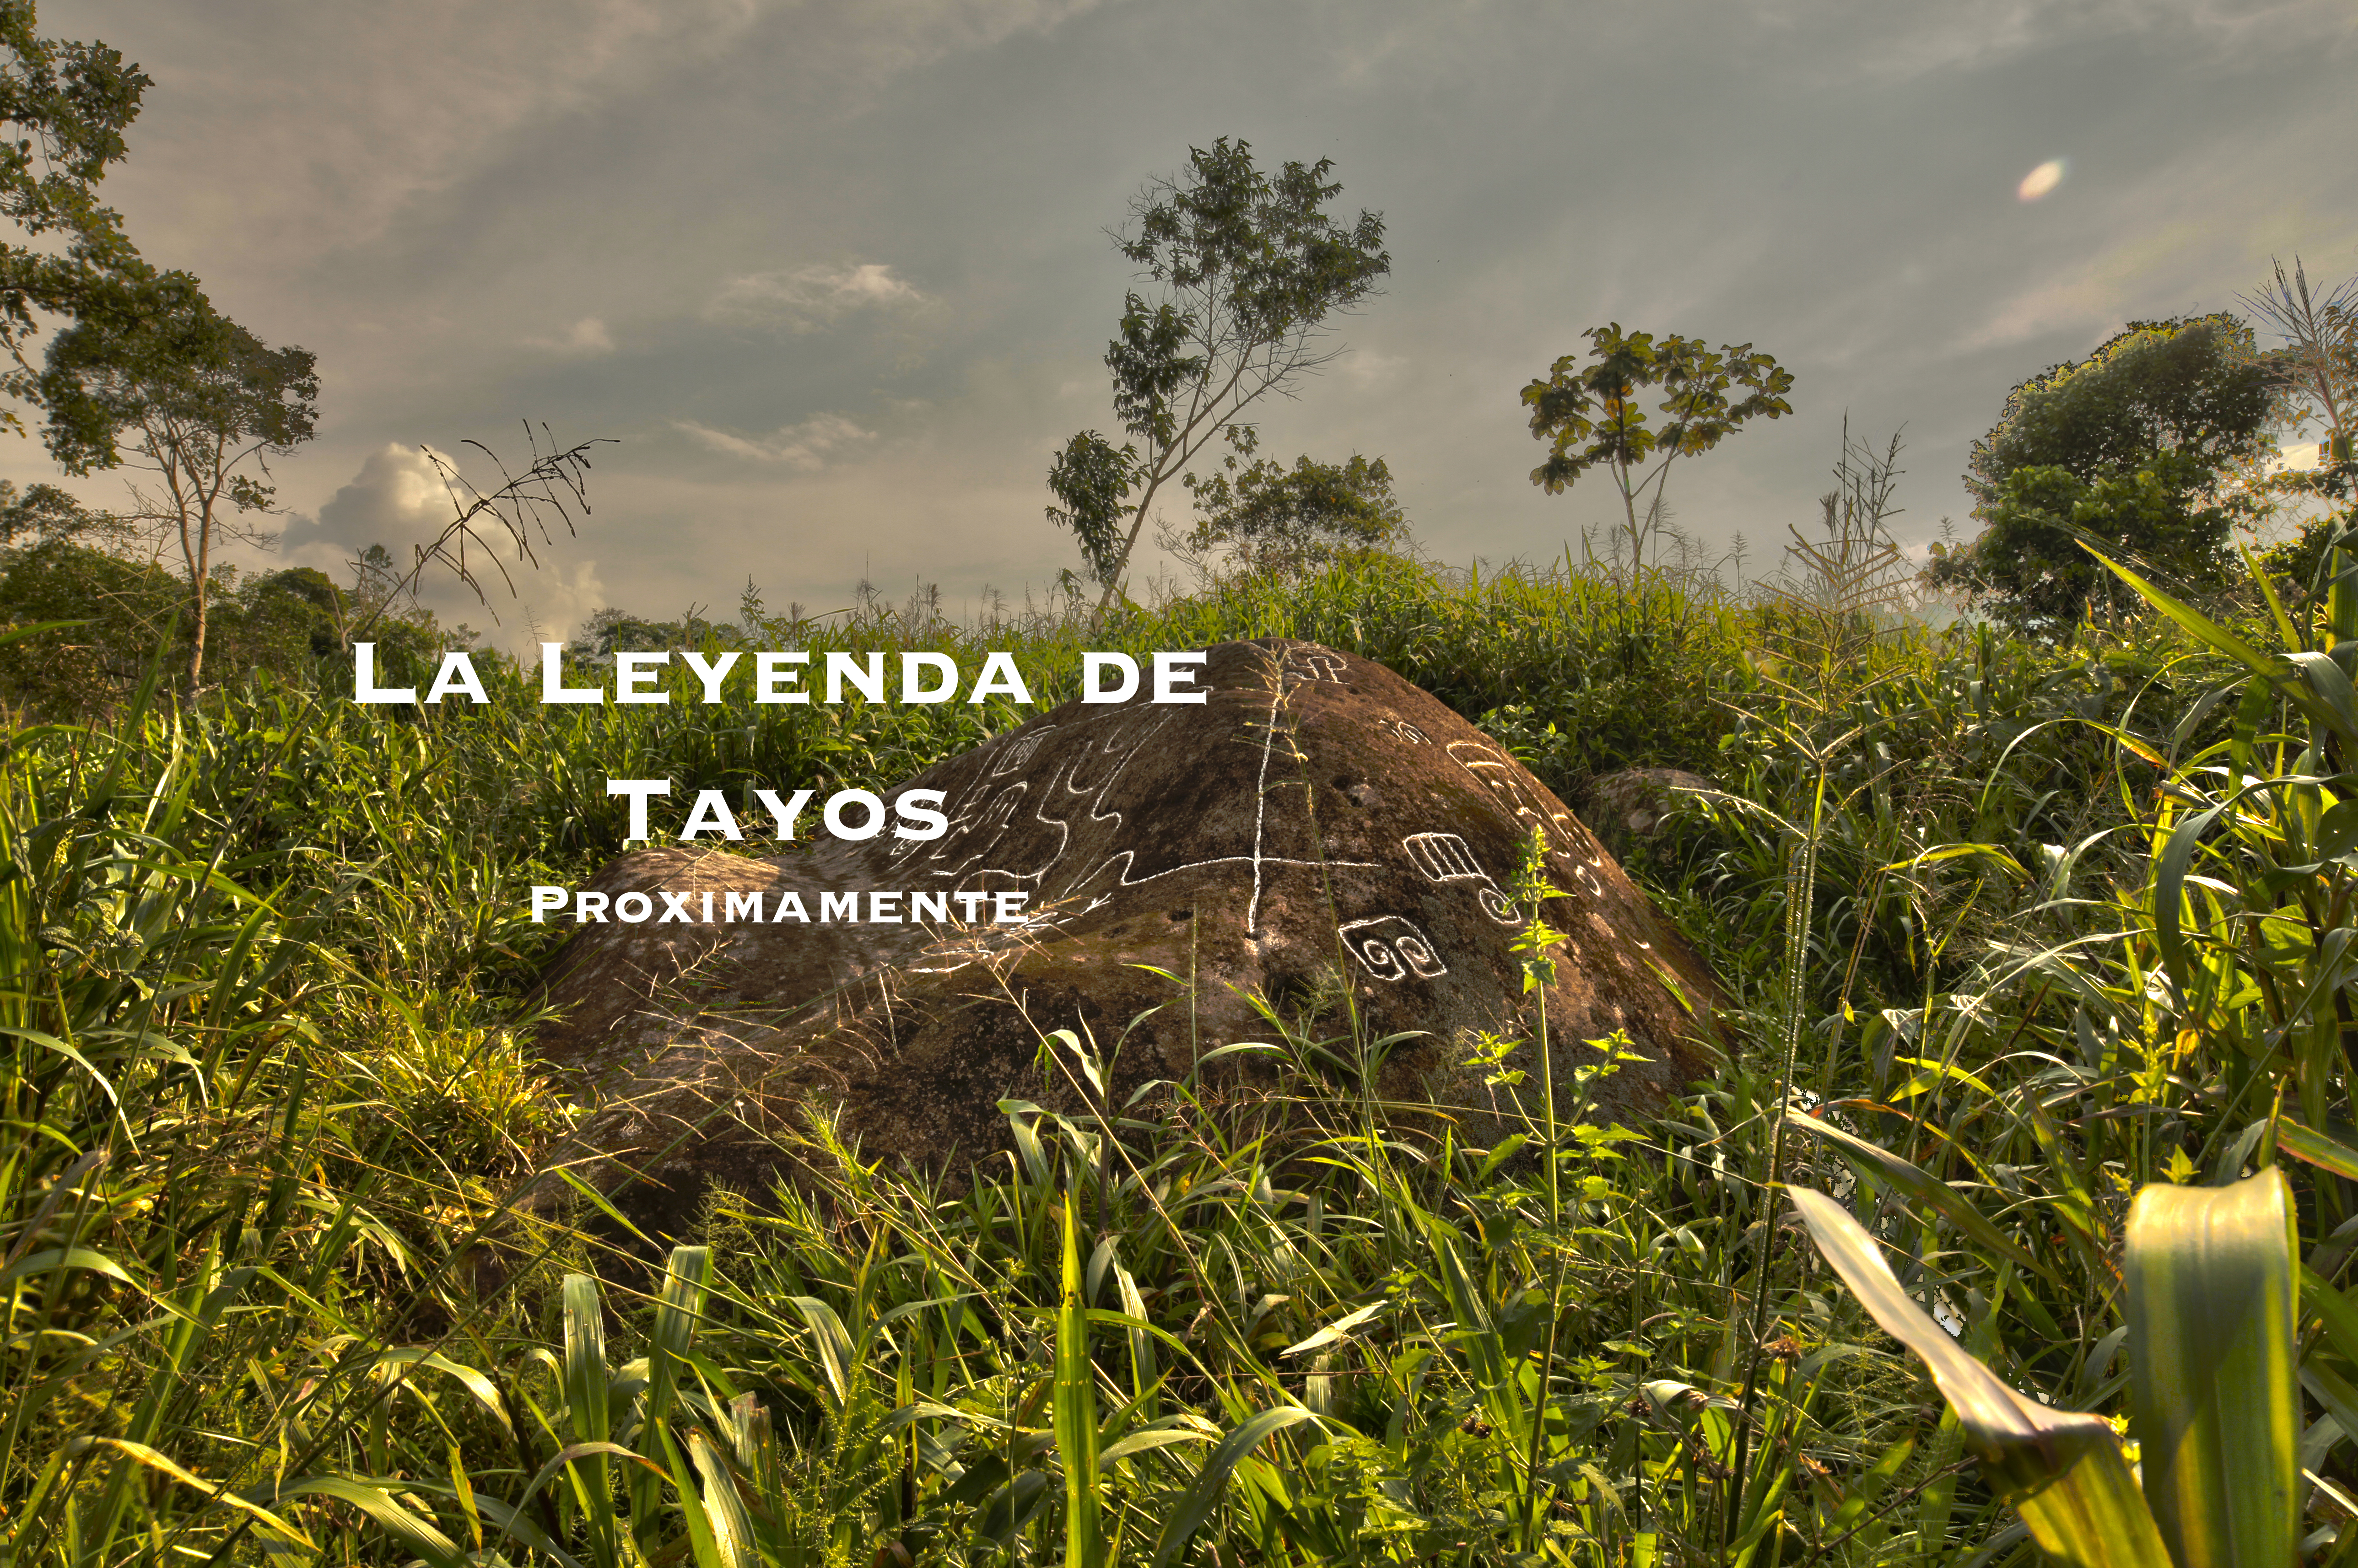 The Legend of Tayos